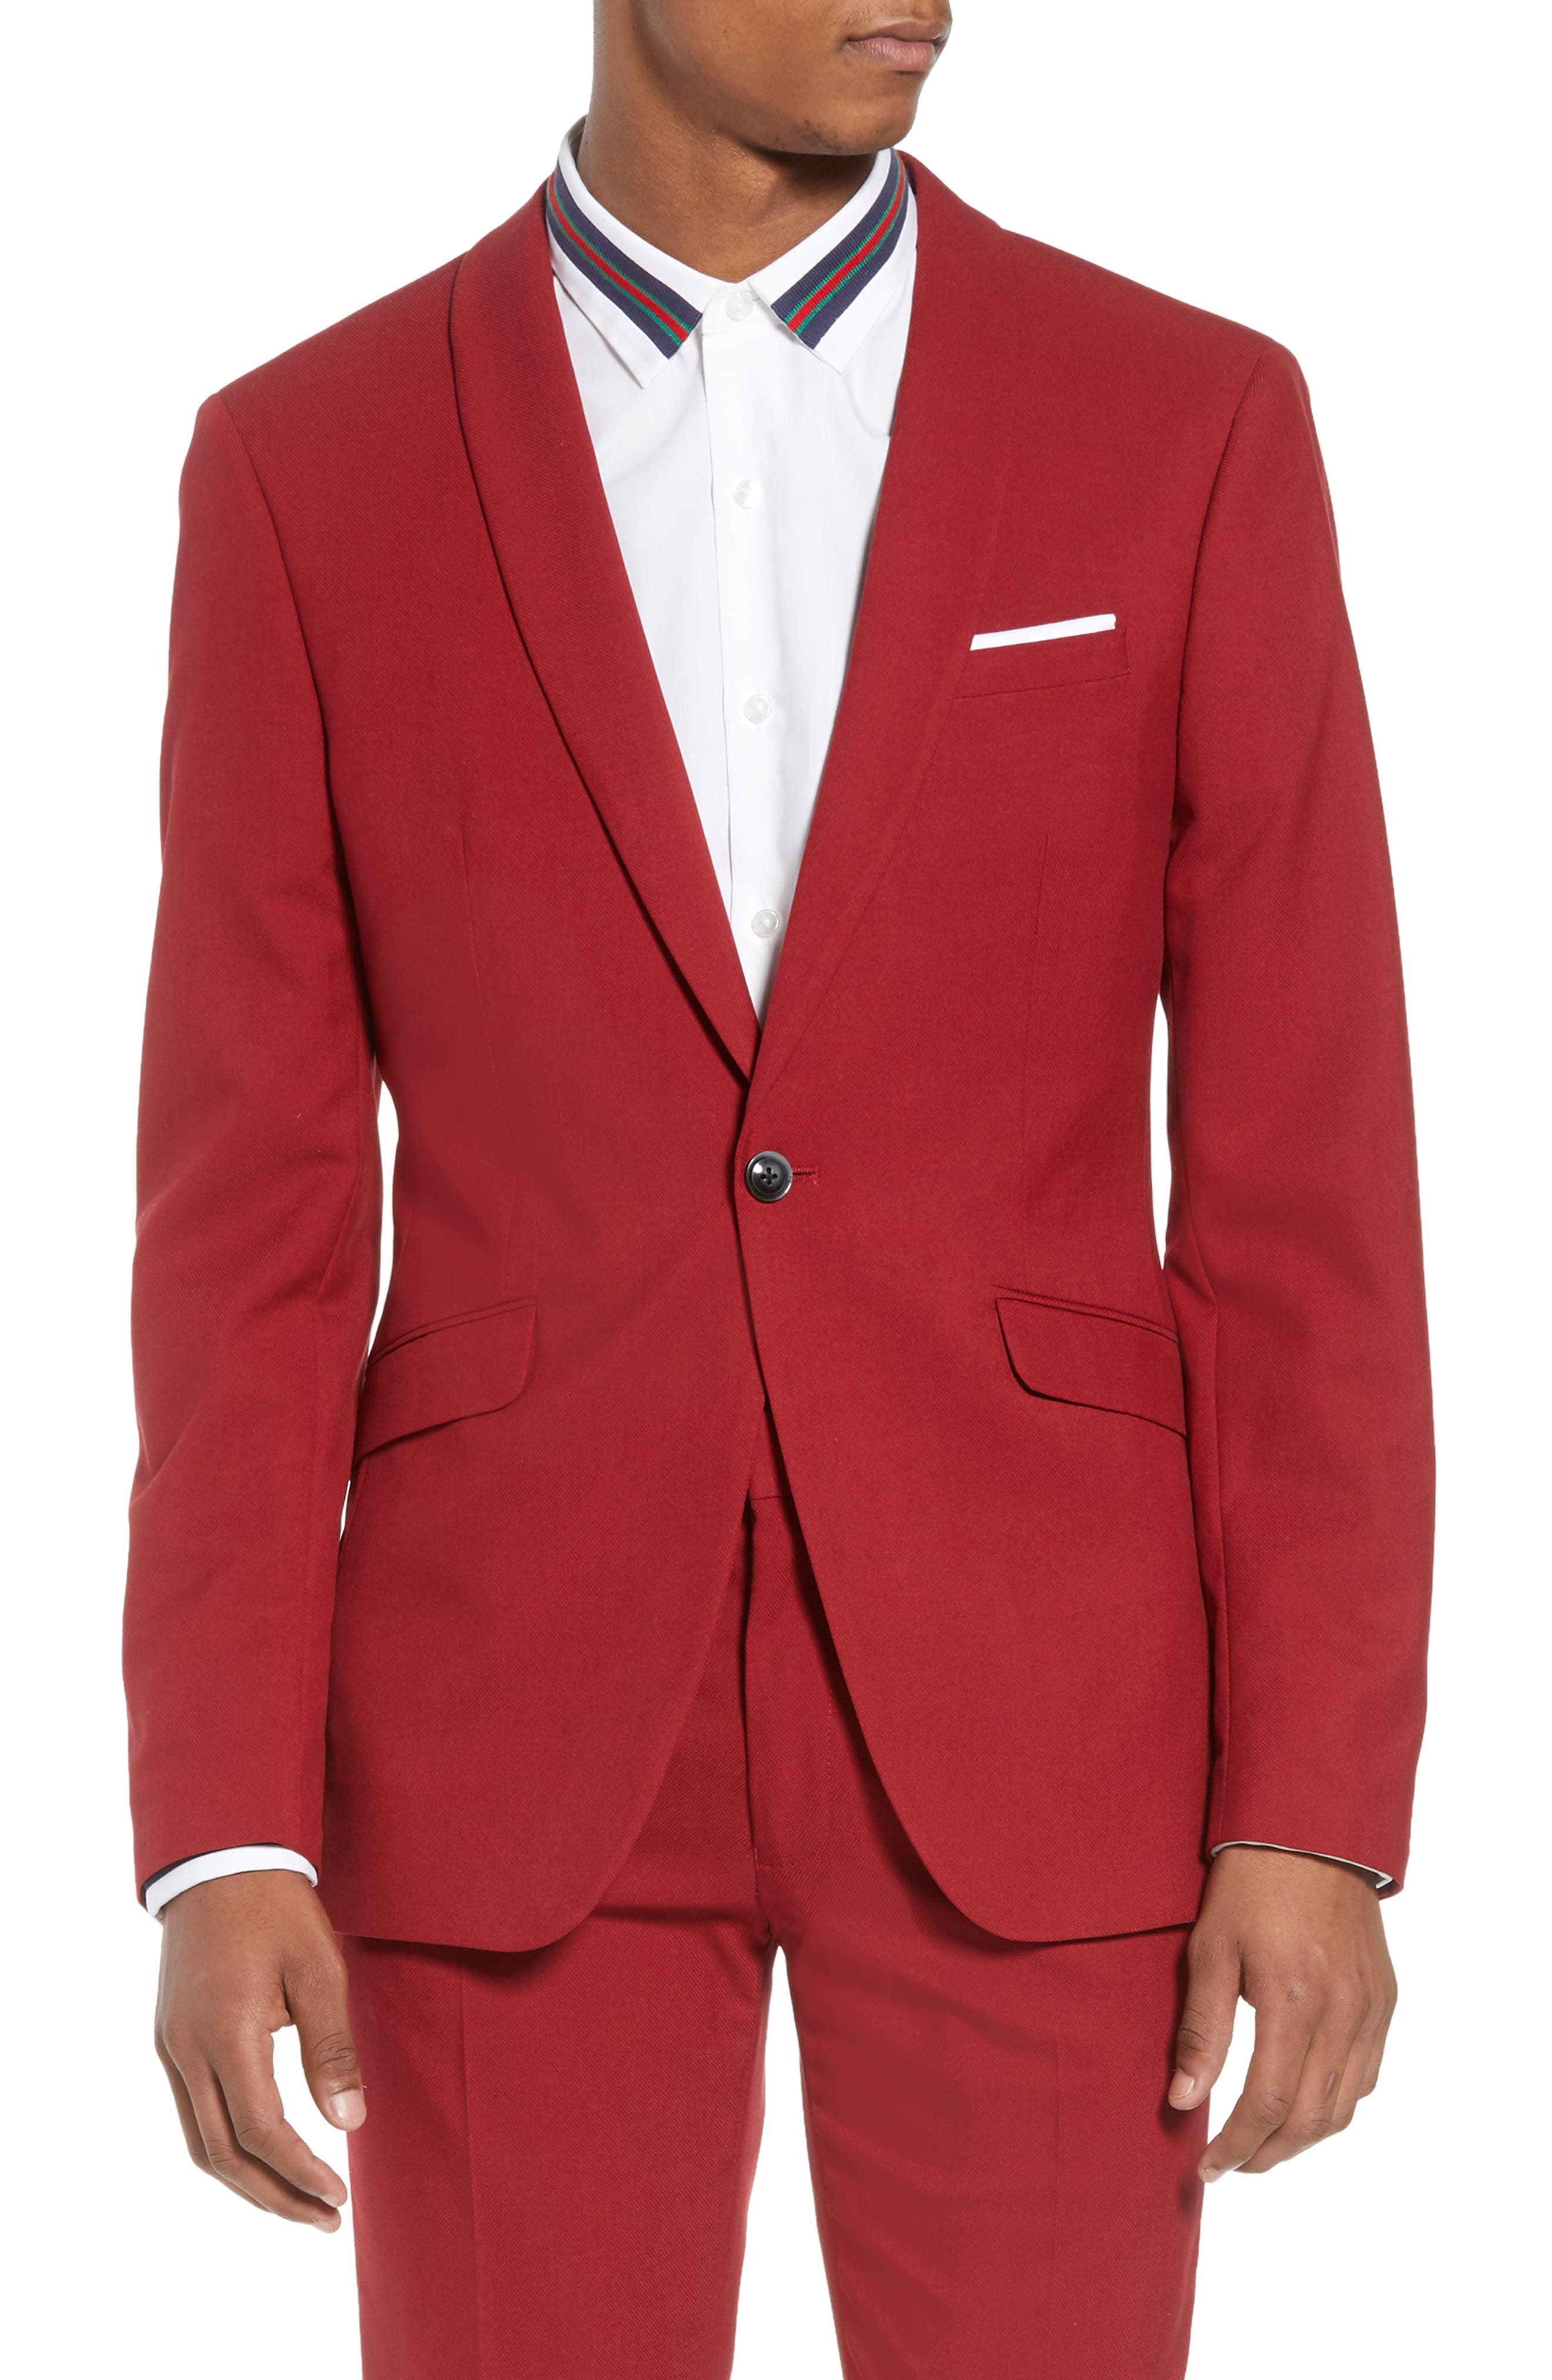 Skinny Fit Suit Jacket,                         Main,                         color, Red